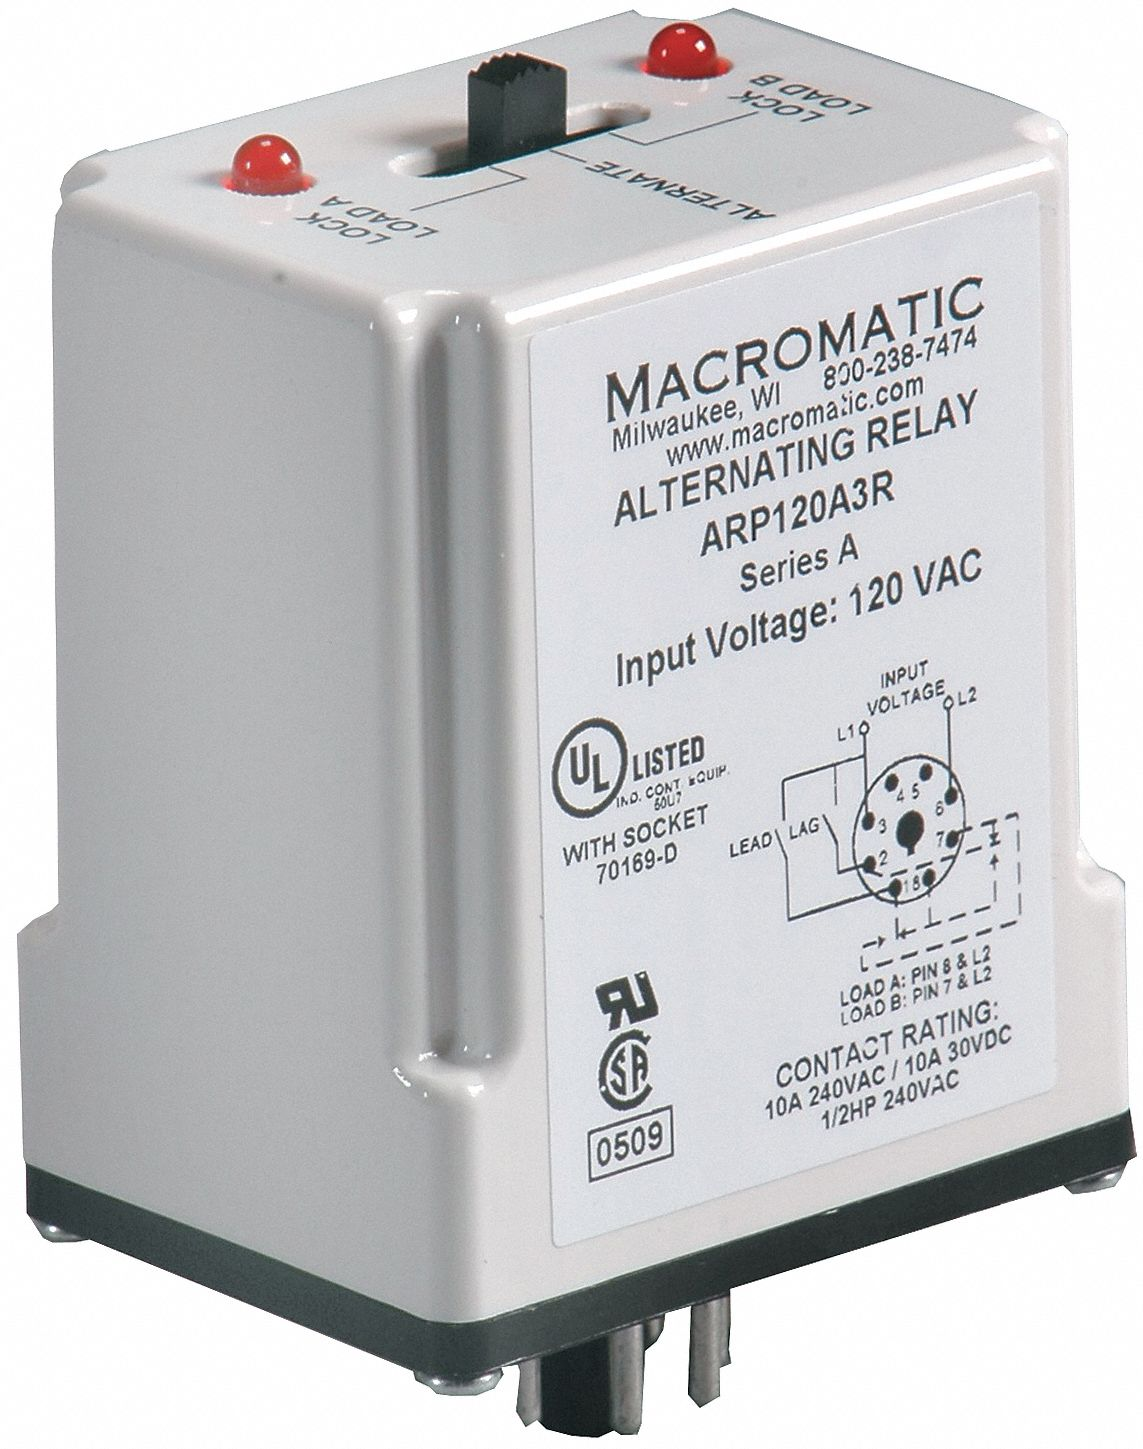 hight resolution of macromatic alternating relay 120vac 10a 240v 10a 28v octal base type 8 pins 3 0va dpdt cross wired 6mpn9 arp120a3r grainger